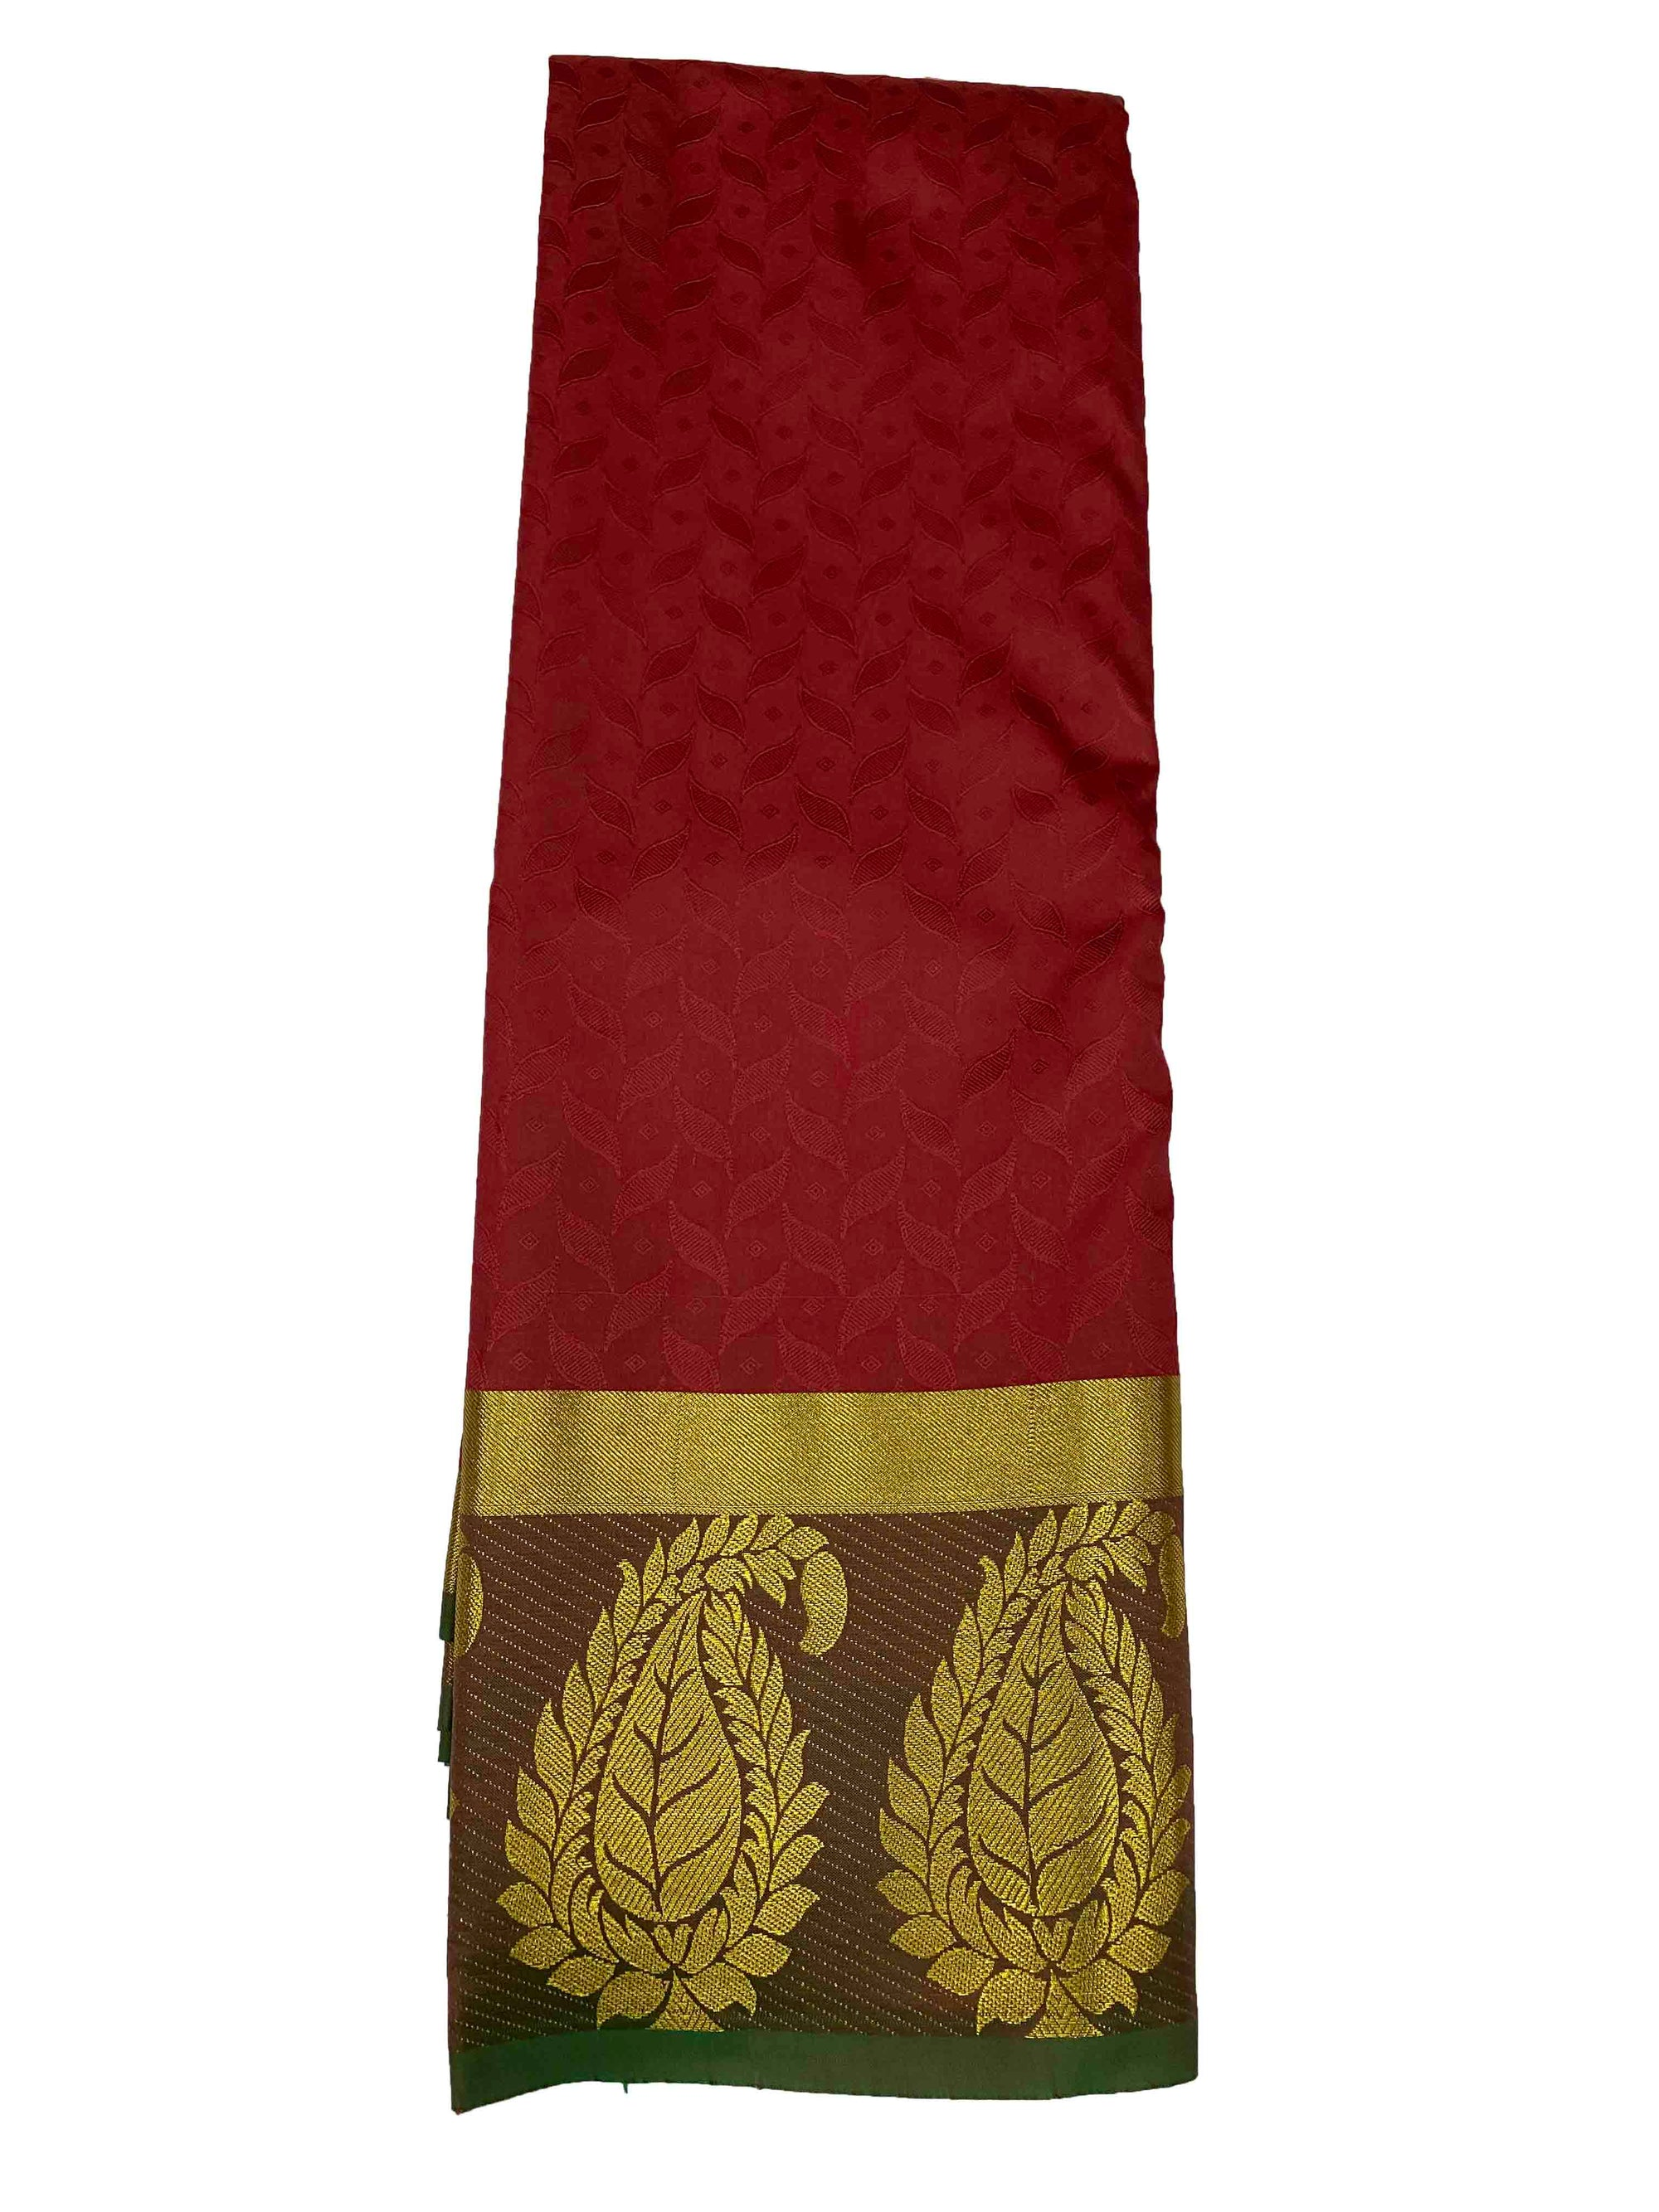 arars Women's Kanchipuram Pattu plain embosed Silk Saree With Blouse (556_maroon_green )